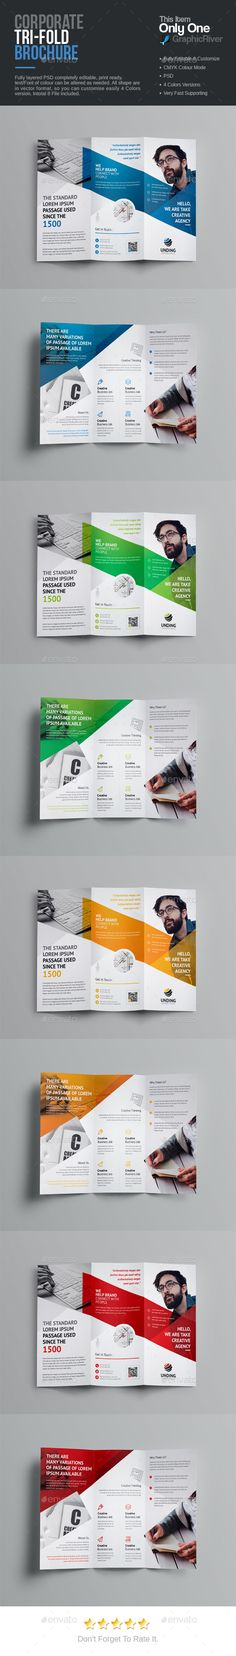 Square TriFold Brochure Template Psd  Brochure Templates